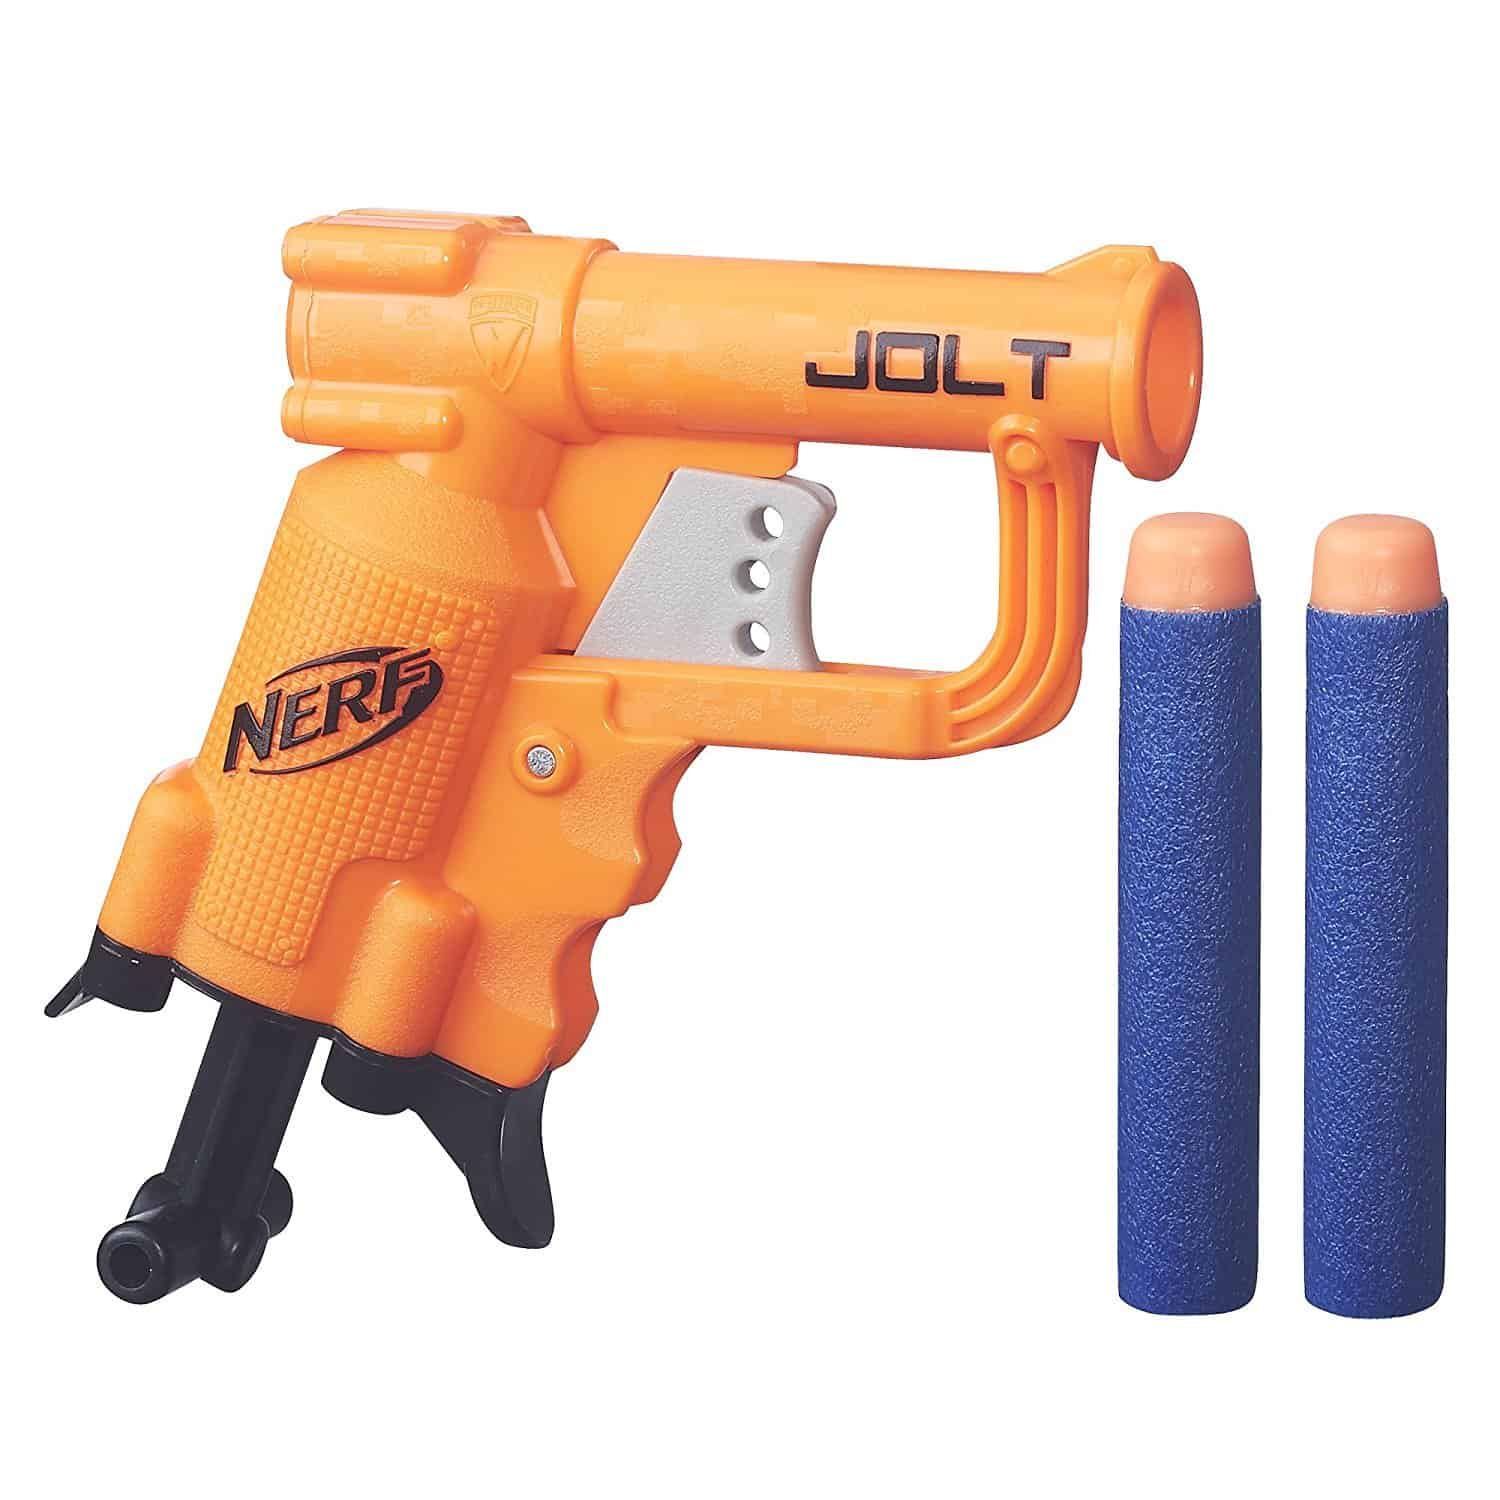 Nerf N-Strike Elite Jolt Blaster - Best Nerf guns for 8-year-